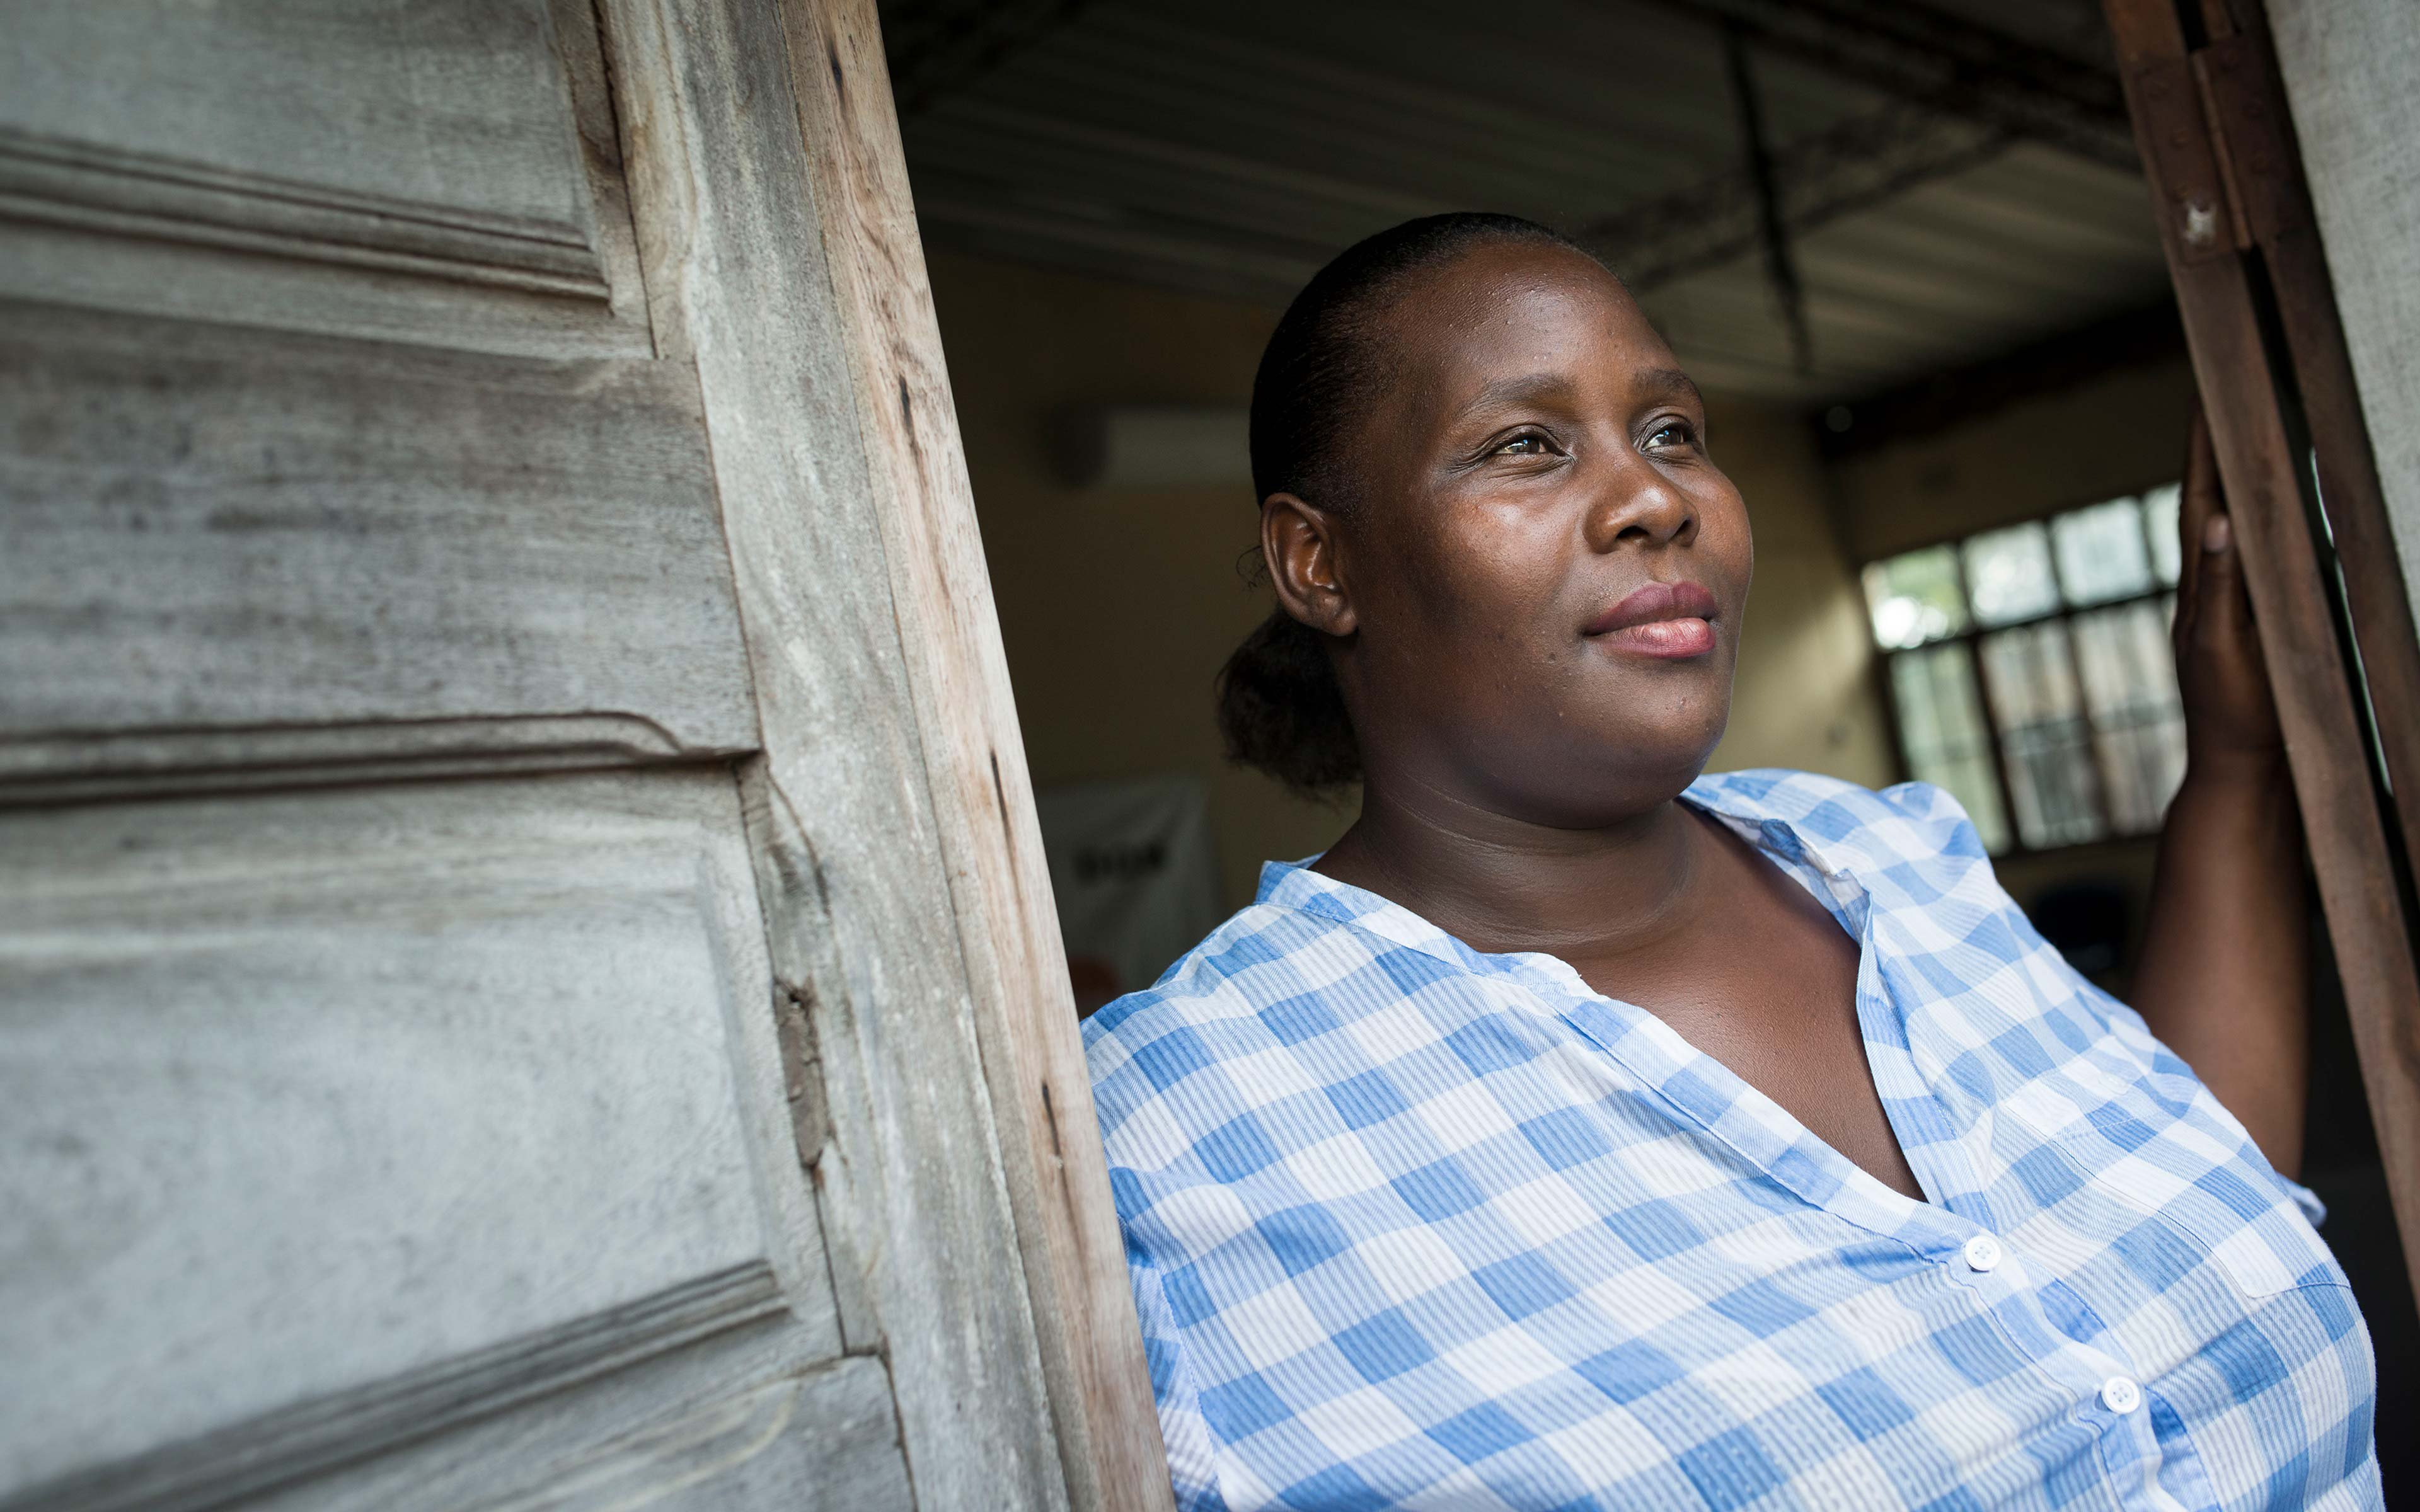 Dulce Narciso coordinates a domestic violence prevention program just north of Maputo. Oxfam helped train her in the Family and Domestic Violence laws in Mozambique.